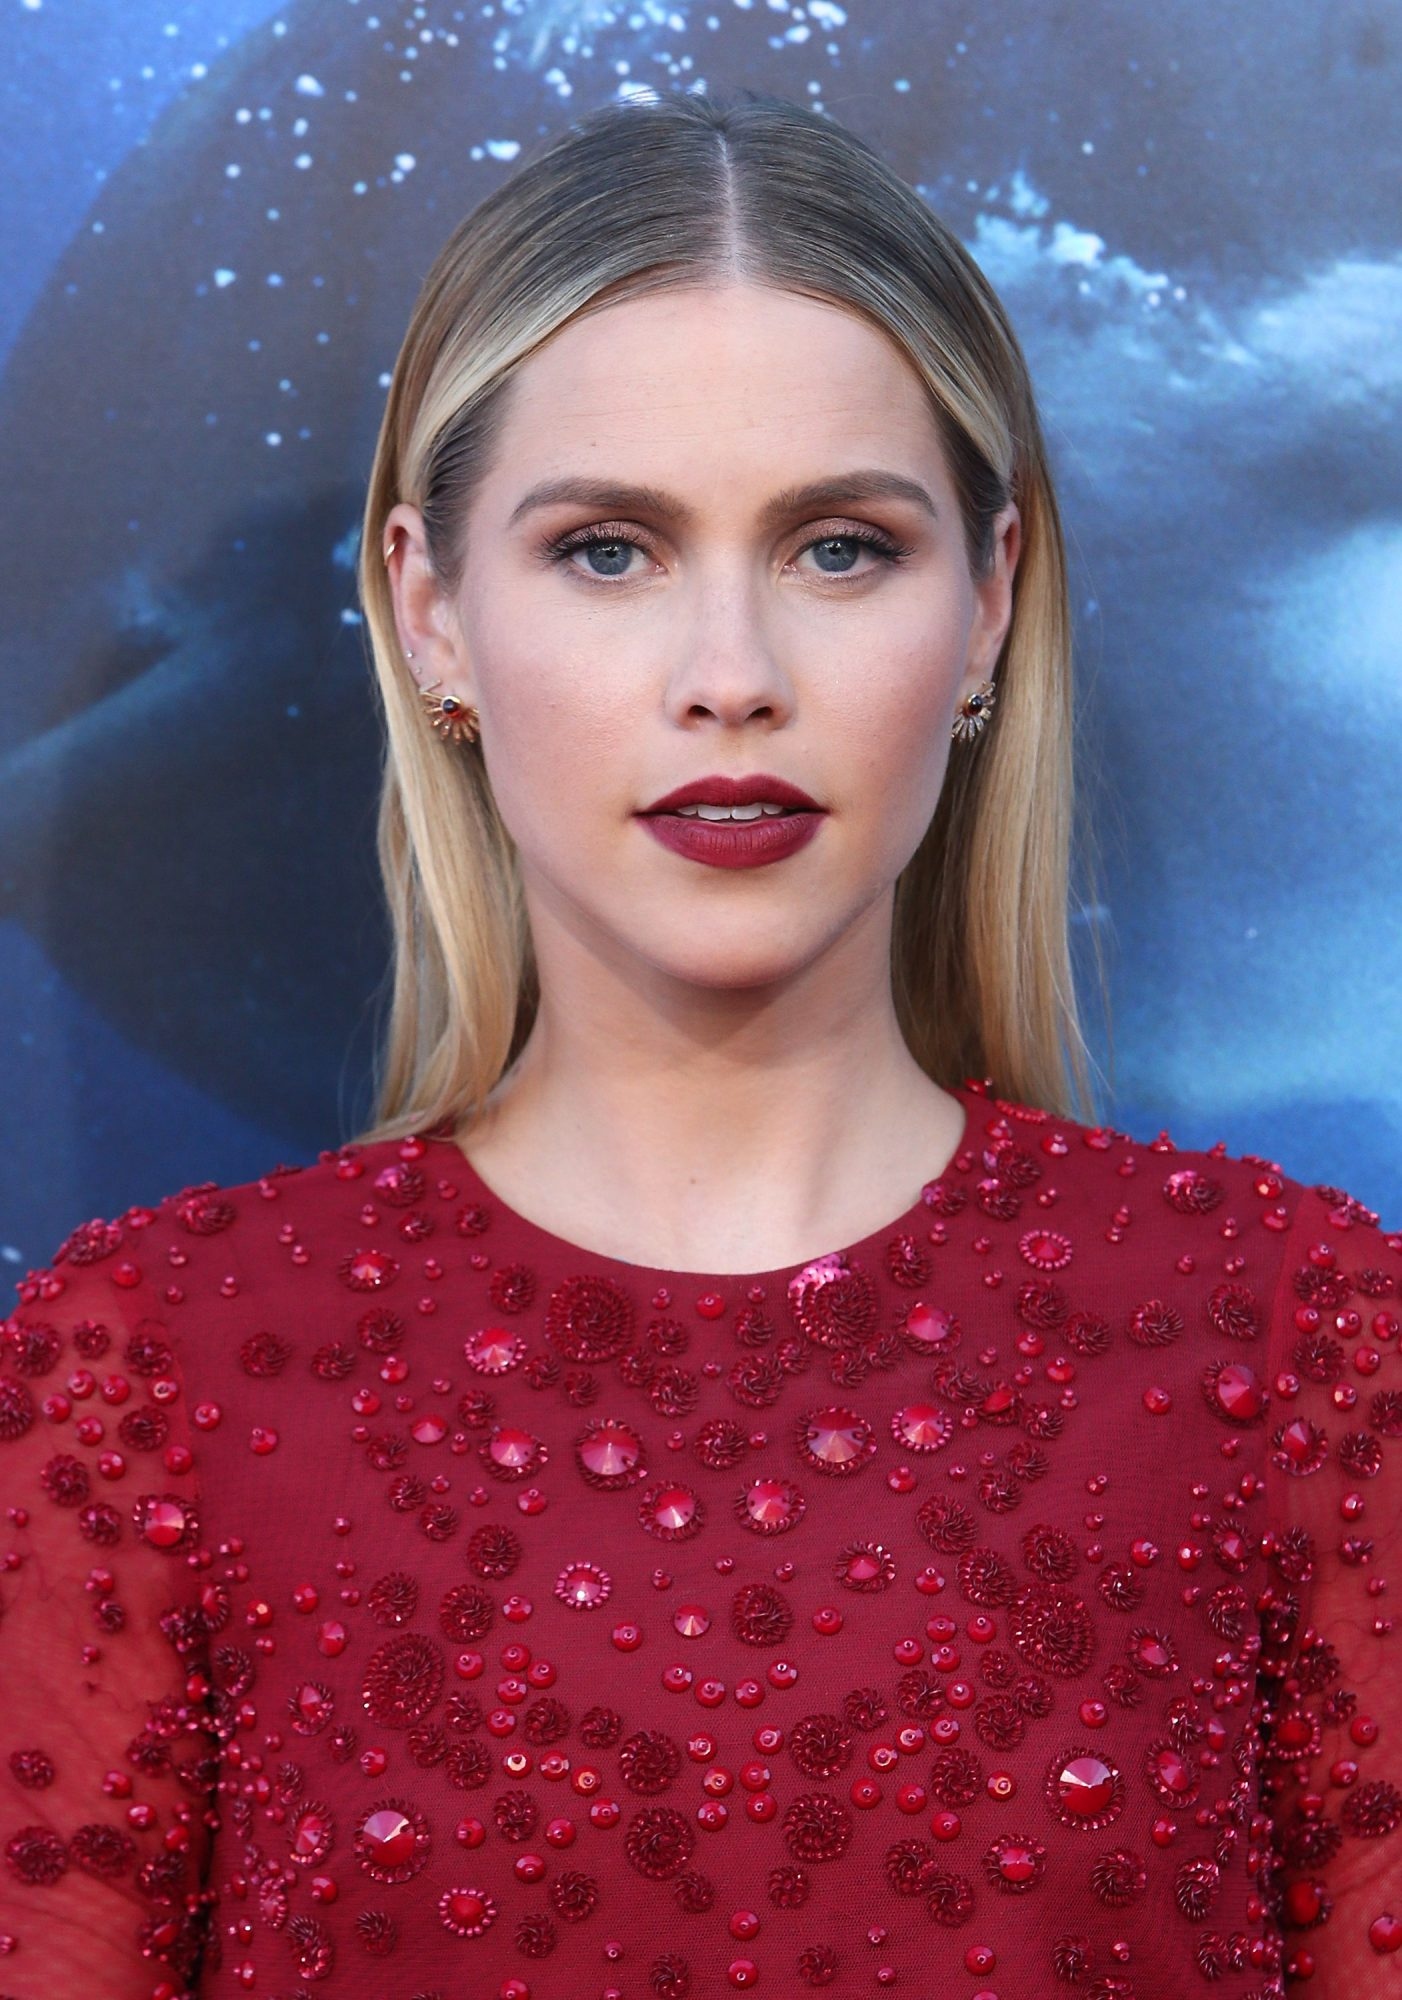 Claire Holt Suffers a Miscarriage, Shares Heartbreaking Story of Her D&C Procedure